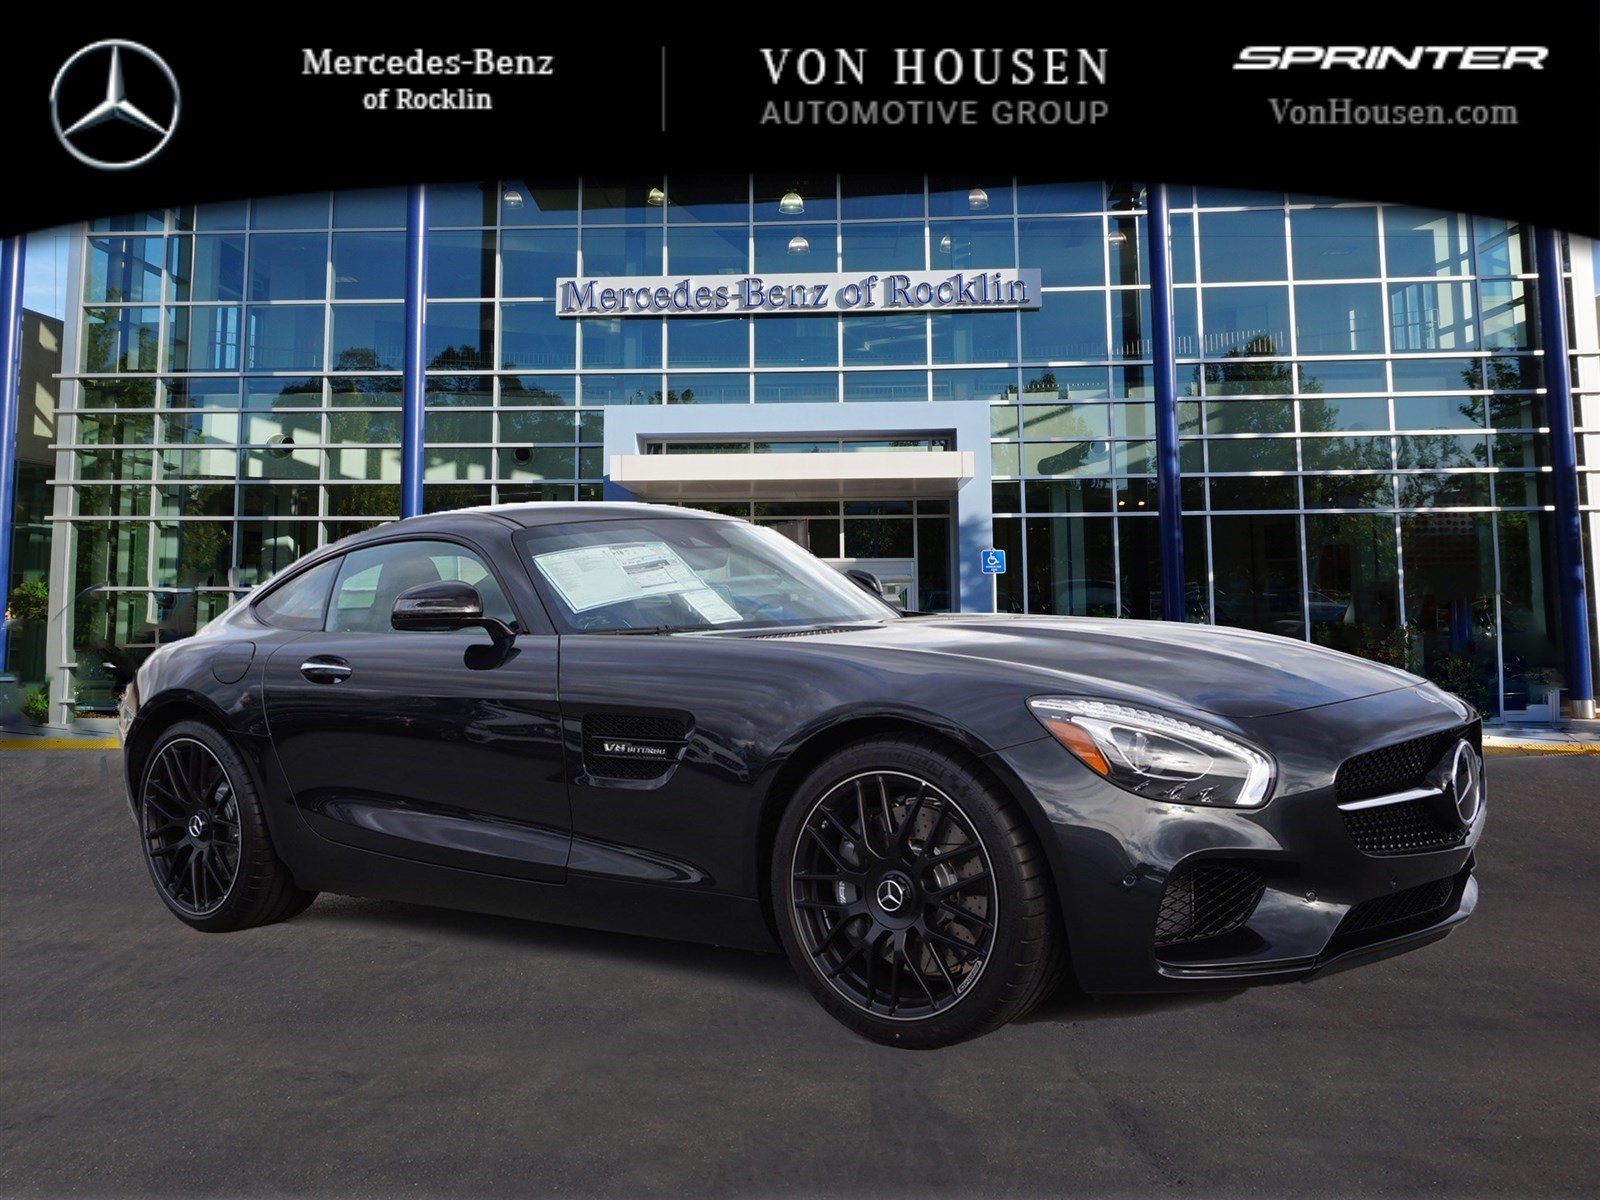 New 2017 mercedes benz amg gt amg gt 2dr car in rocklin for 2017 mercedes benz amg gt msrp